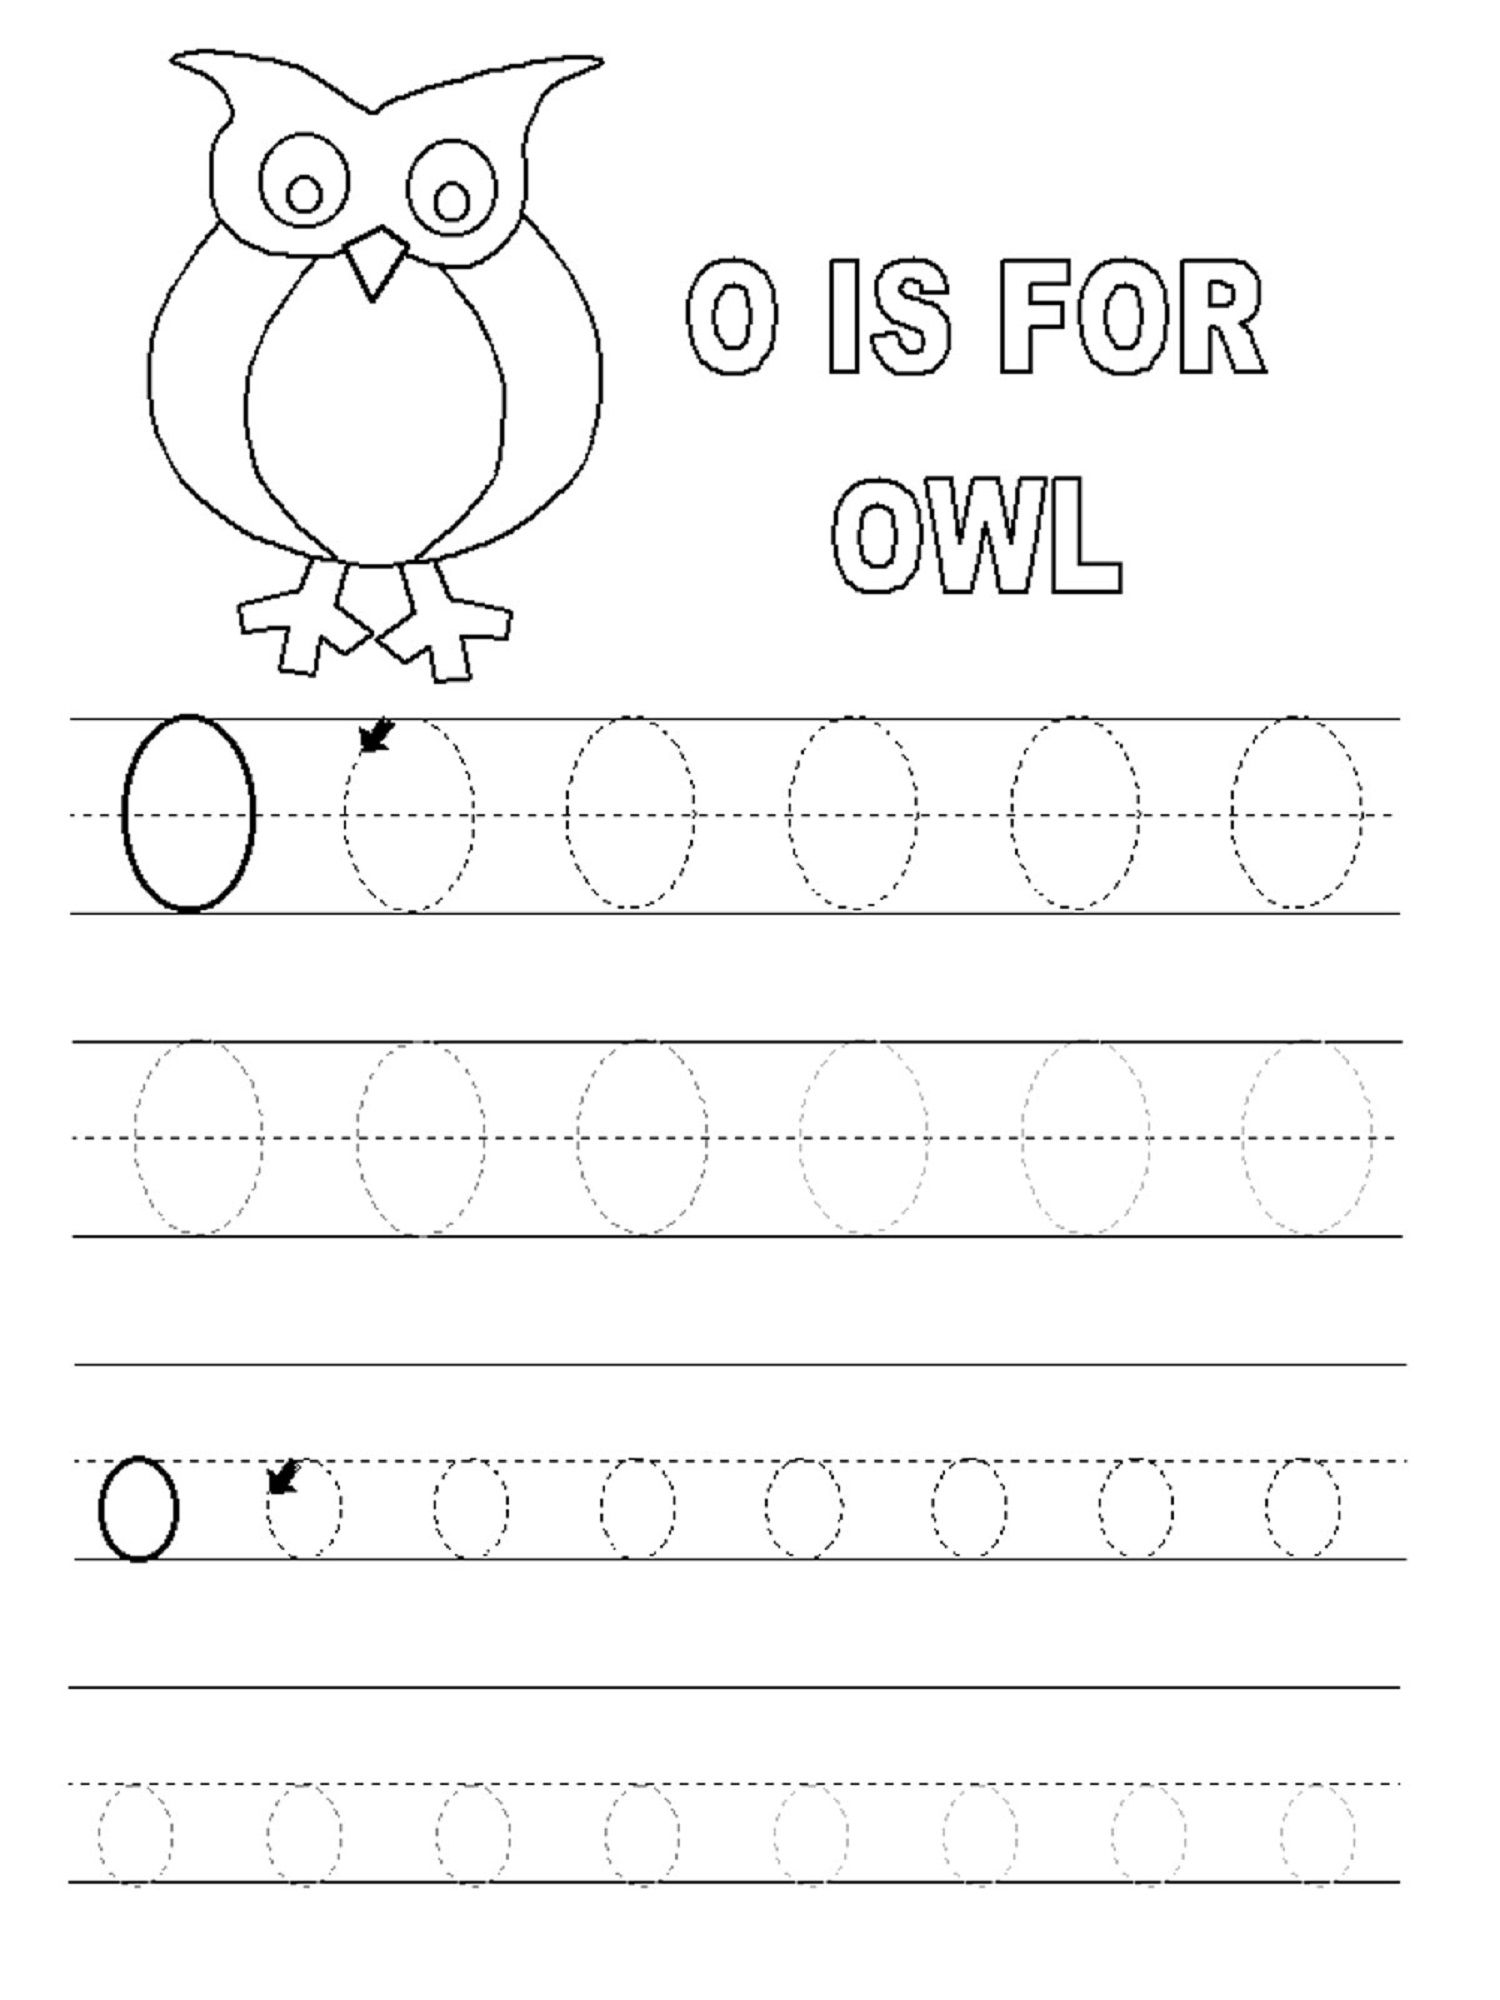 worksheet Letter O Worksheet letter o worksheet for alphabet learning dear joya kids activity joya